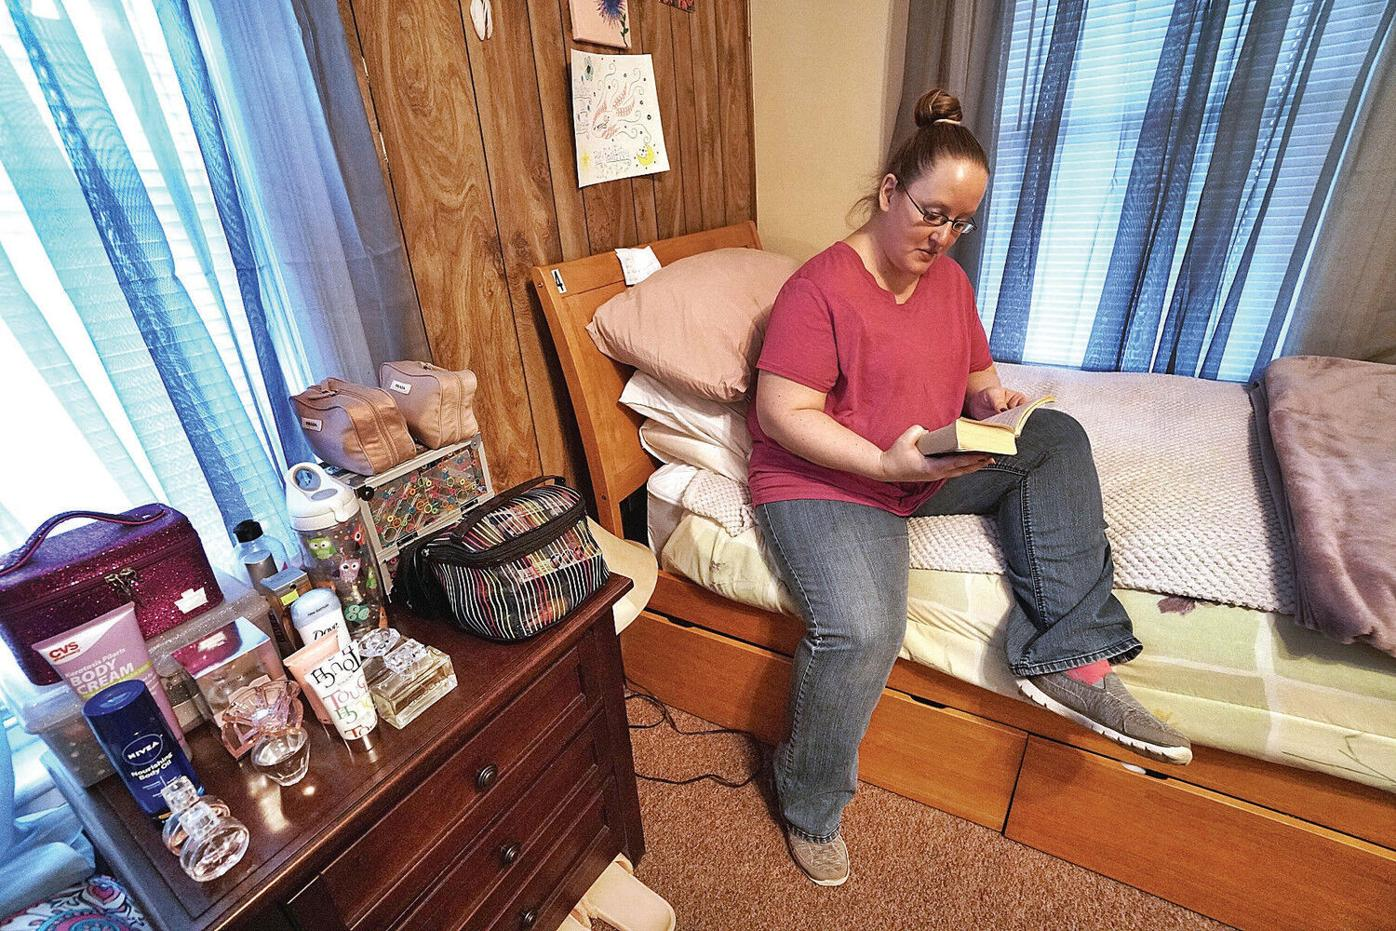 For those seeking addiction recovery, Keenan House for Women in Pittsfield means 'hope'